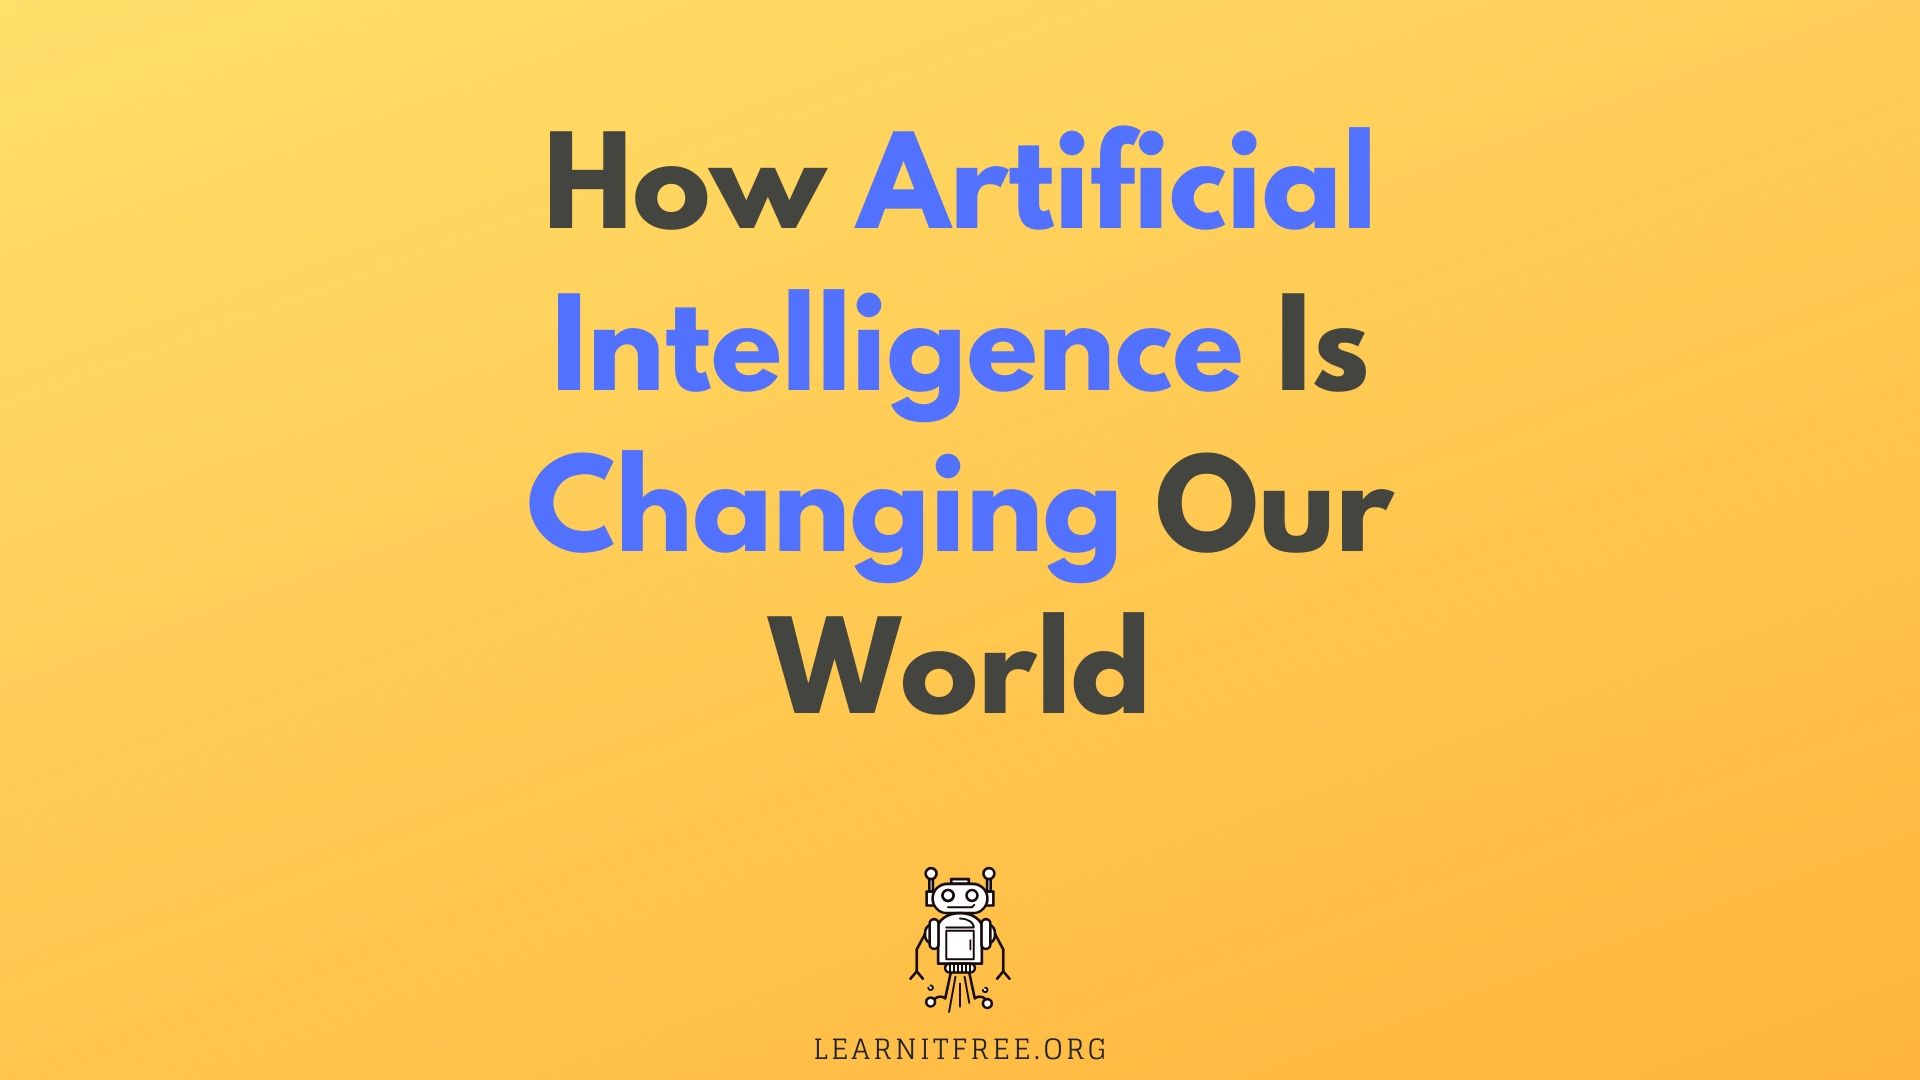 How Artificial Intelligence (AI) Is Changing Our World